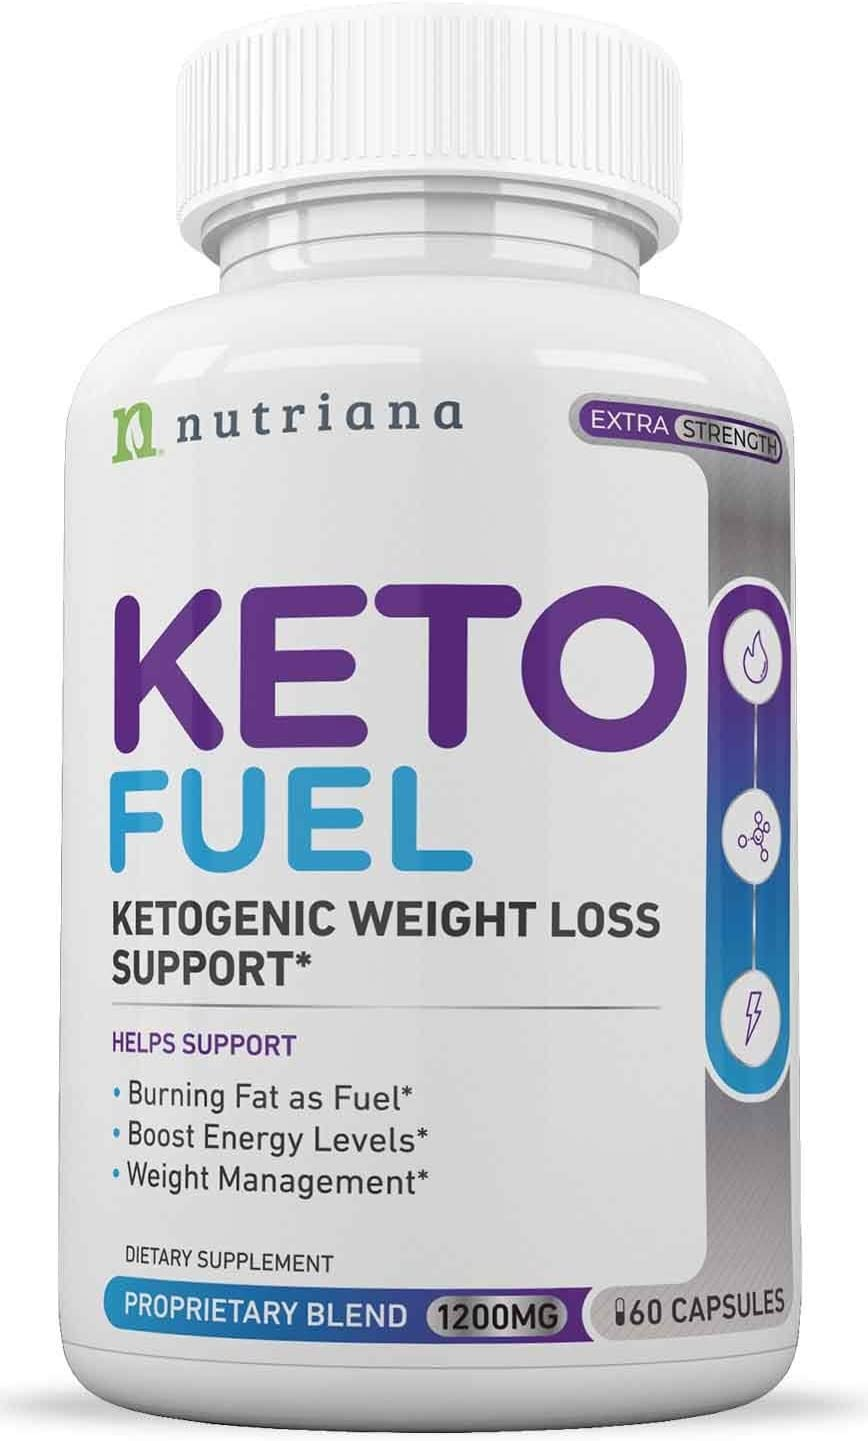 Best Keto Supplement Weight Loss Diet Pills for Women and Men- Keto Slim Appetite Suppressant for Fat Burner Keto Fuel Ketogenic Weight Loss Supplement - 60 Keto Diet Weight Loss Pills